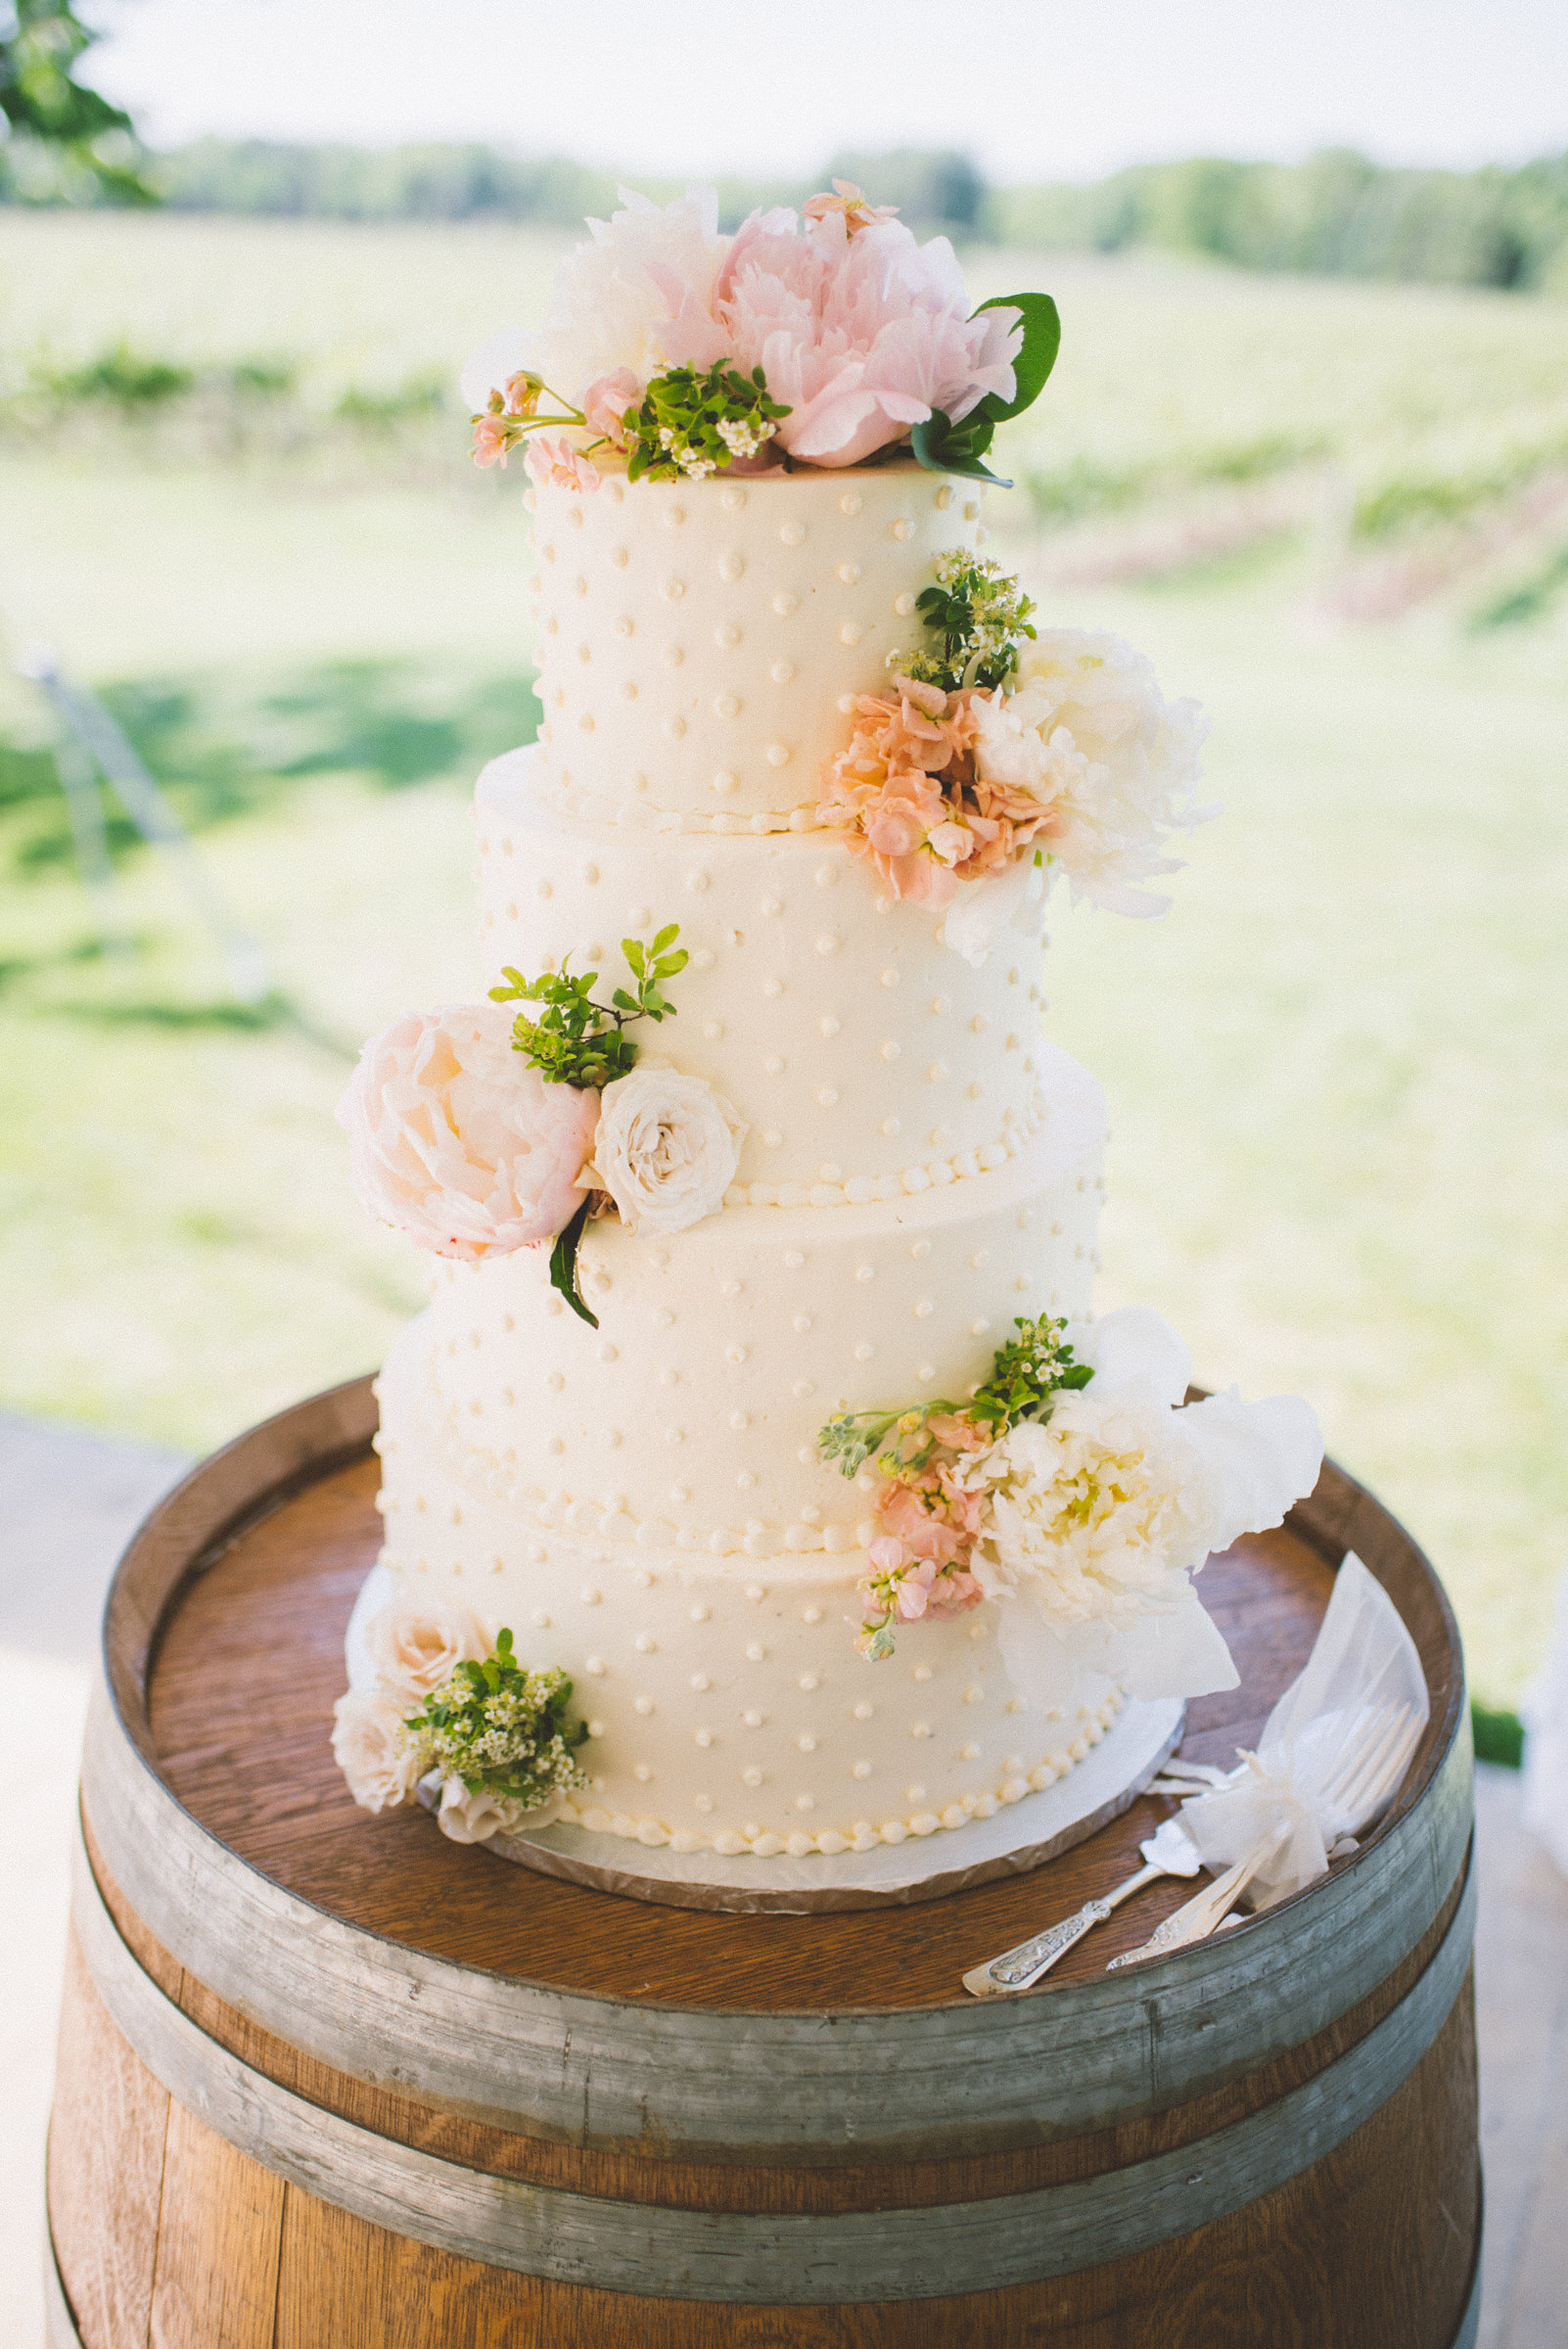 amanda cowley events niagara wedding planner kurtz orchard gracewood estate white polka dot cake fresh florals peony pretty